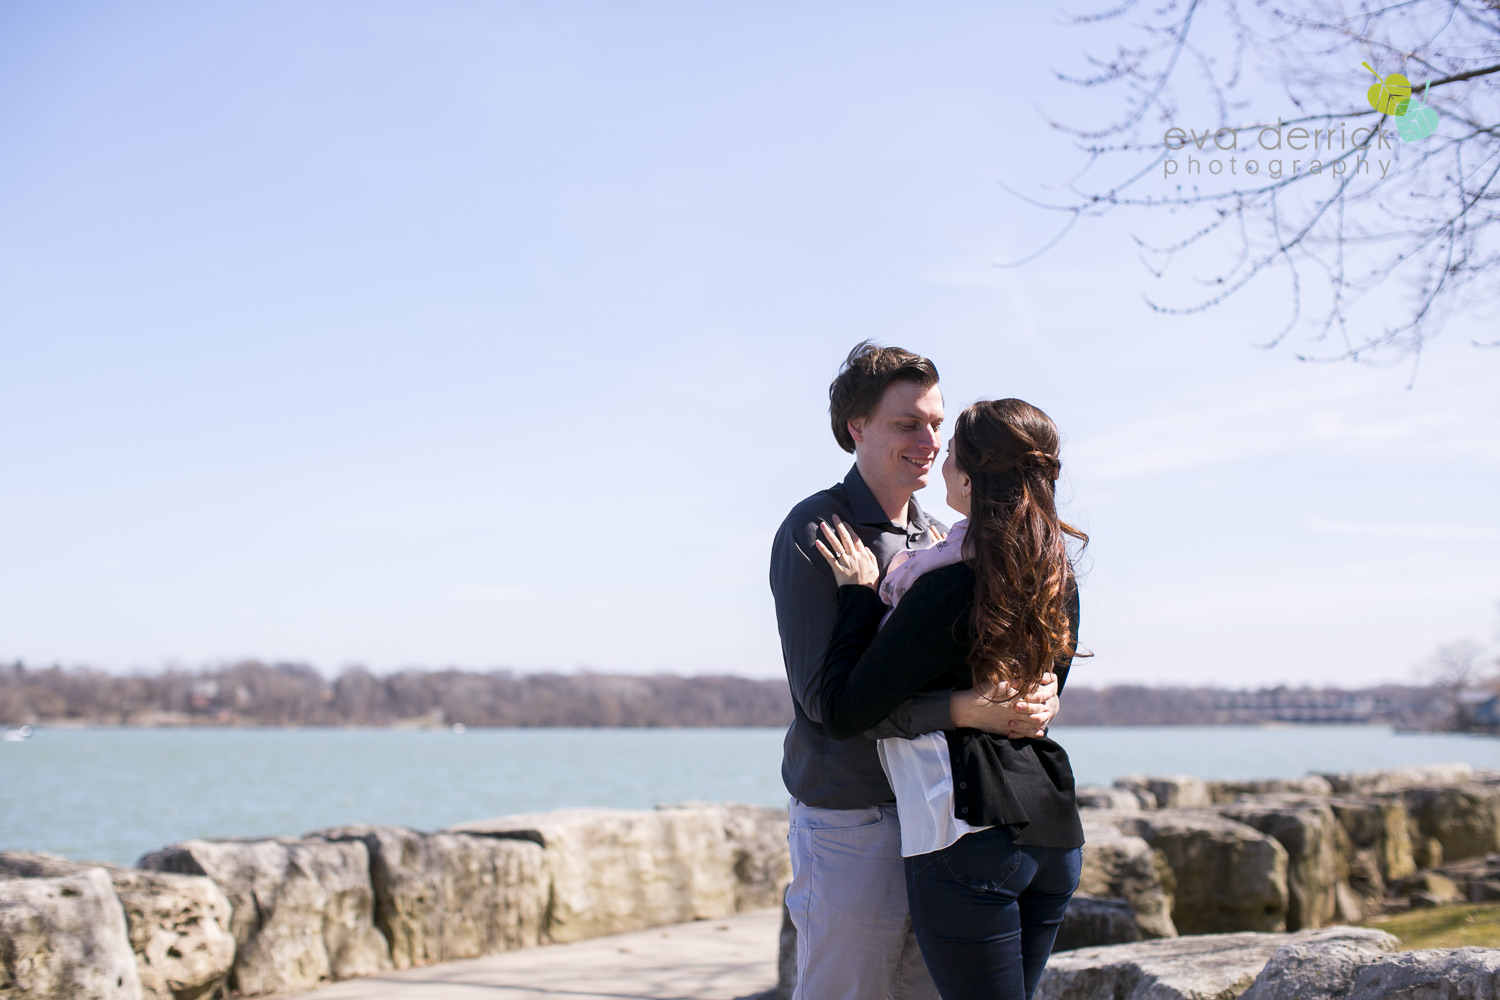 Niagara-on-the-Lake-Engagement-Session-photography-by-Eva-Derrick-Photography-002.JPG